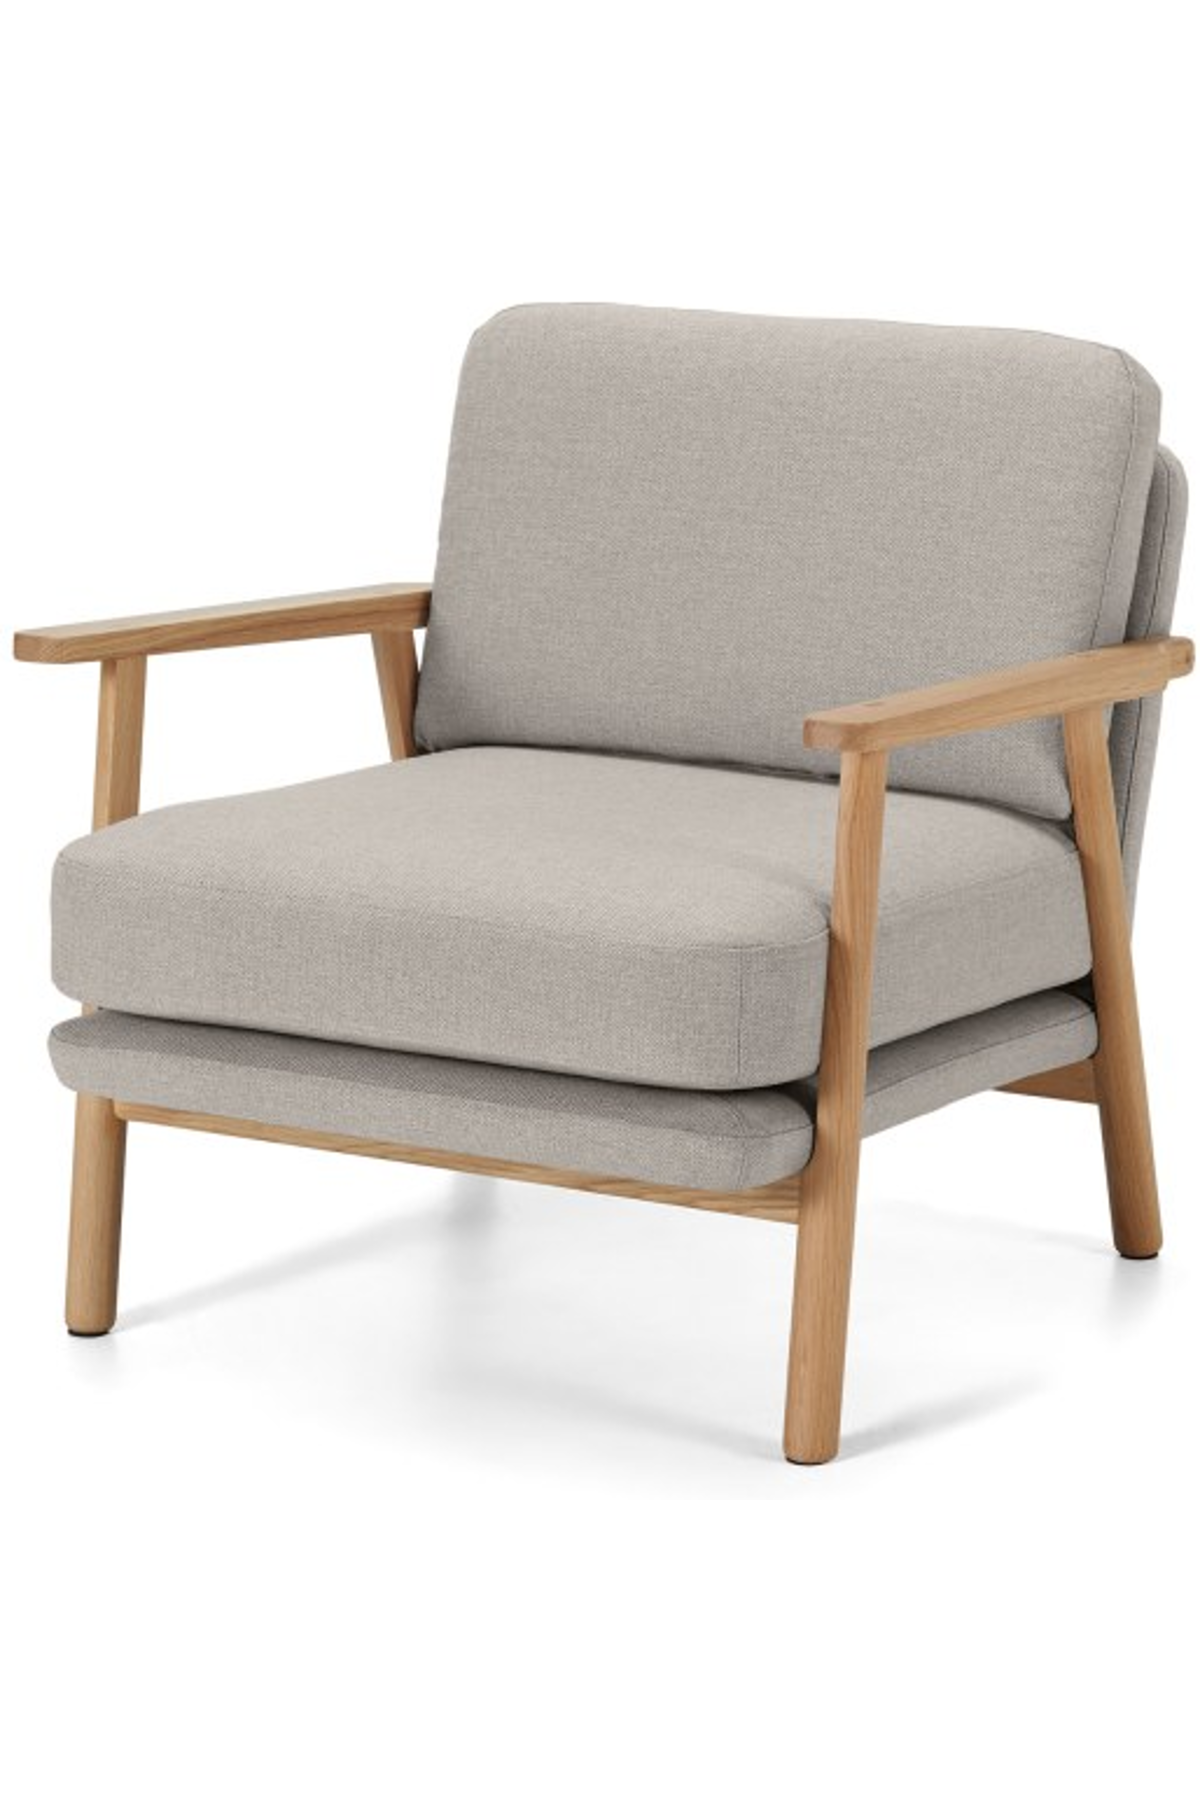 Lars Accent Armchair Salcombe Beige Armchair Accent Chairs Chair